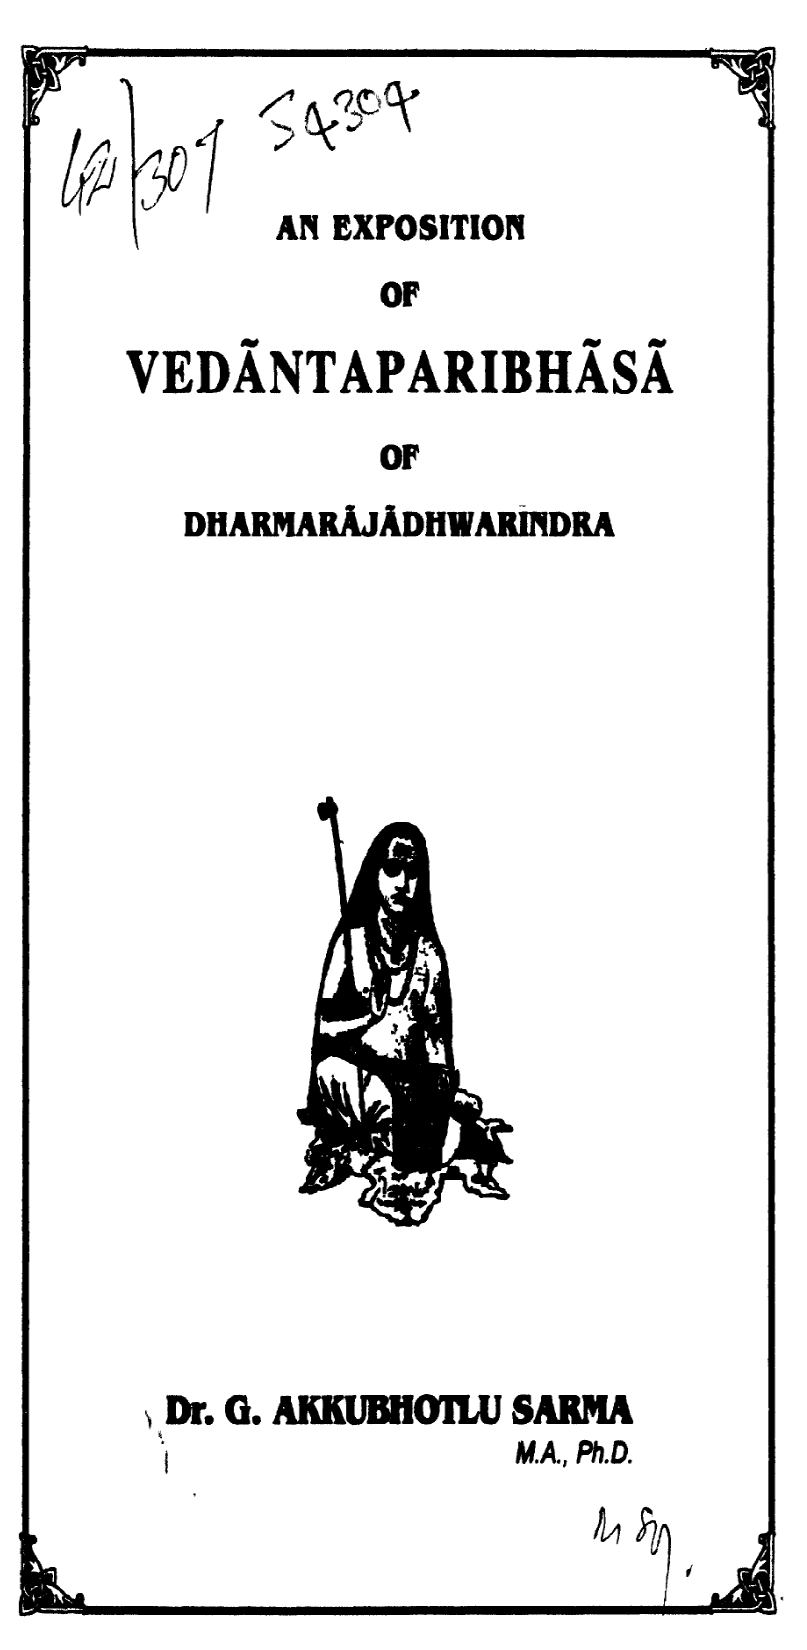 An Exposition of Vedantaparibasha of Dharmarajadwarnindra